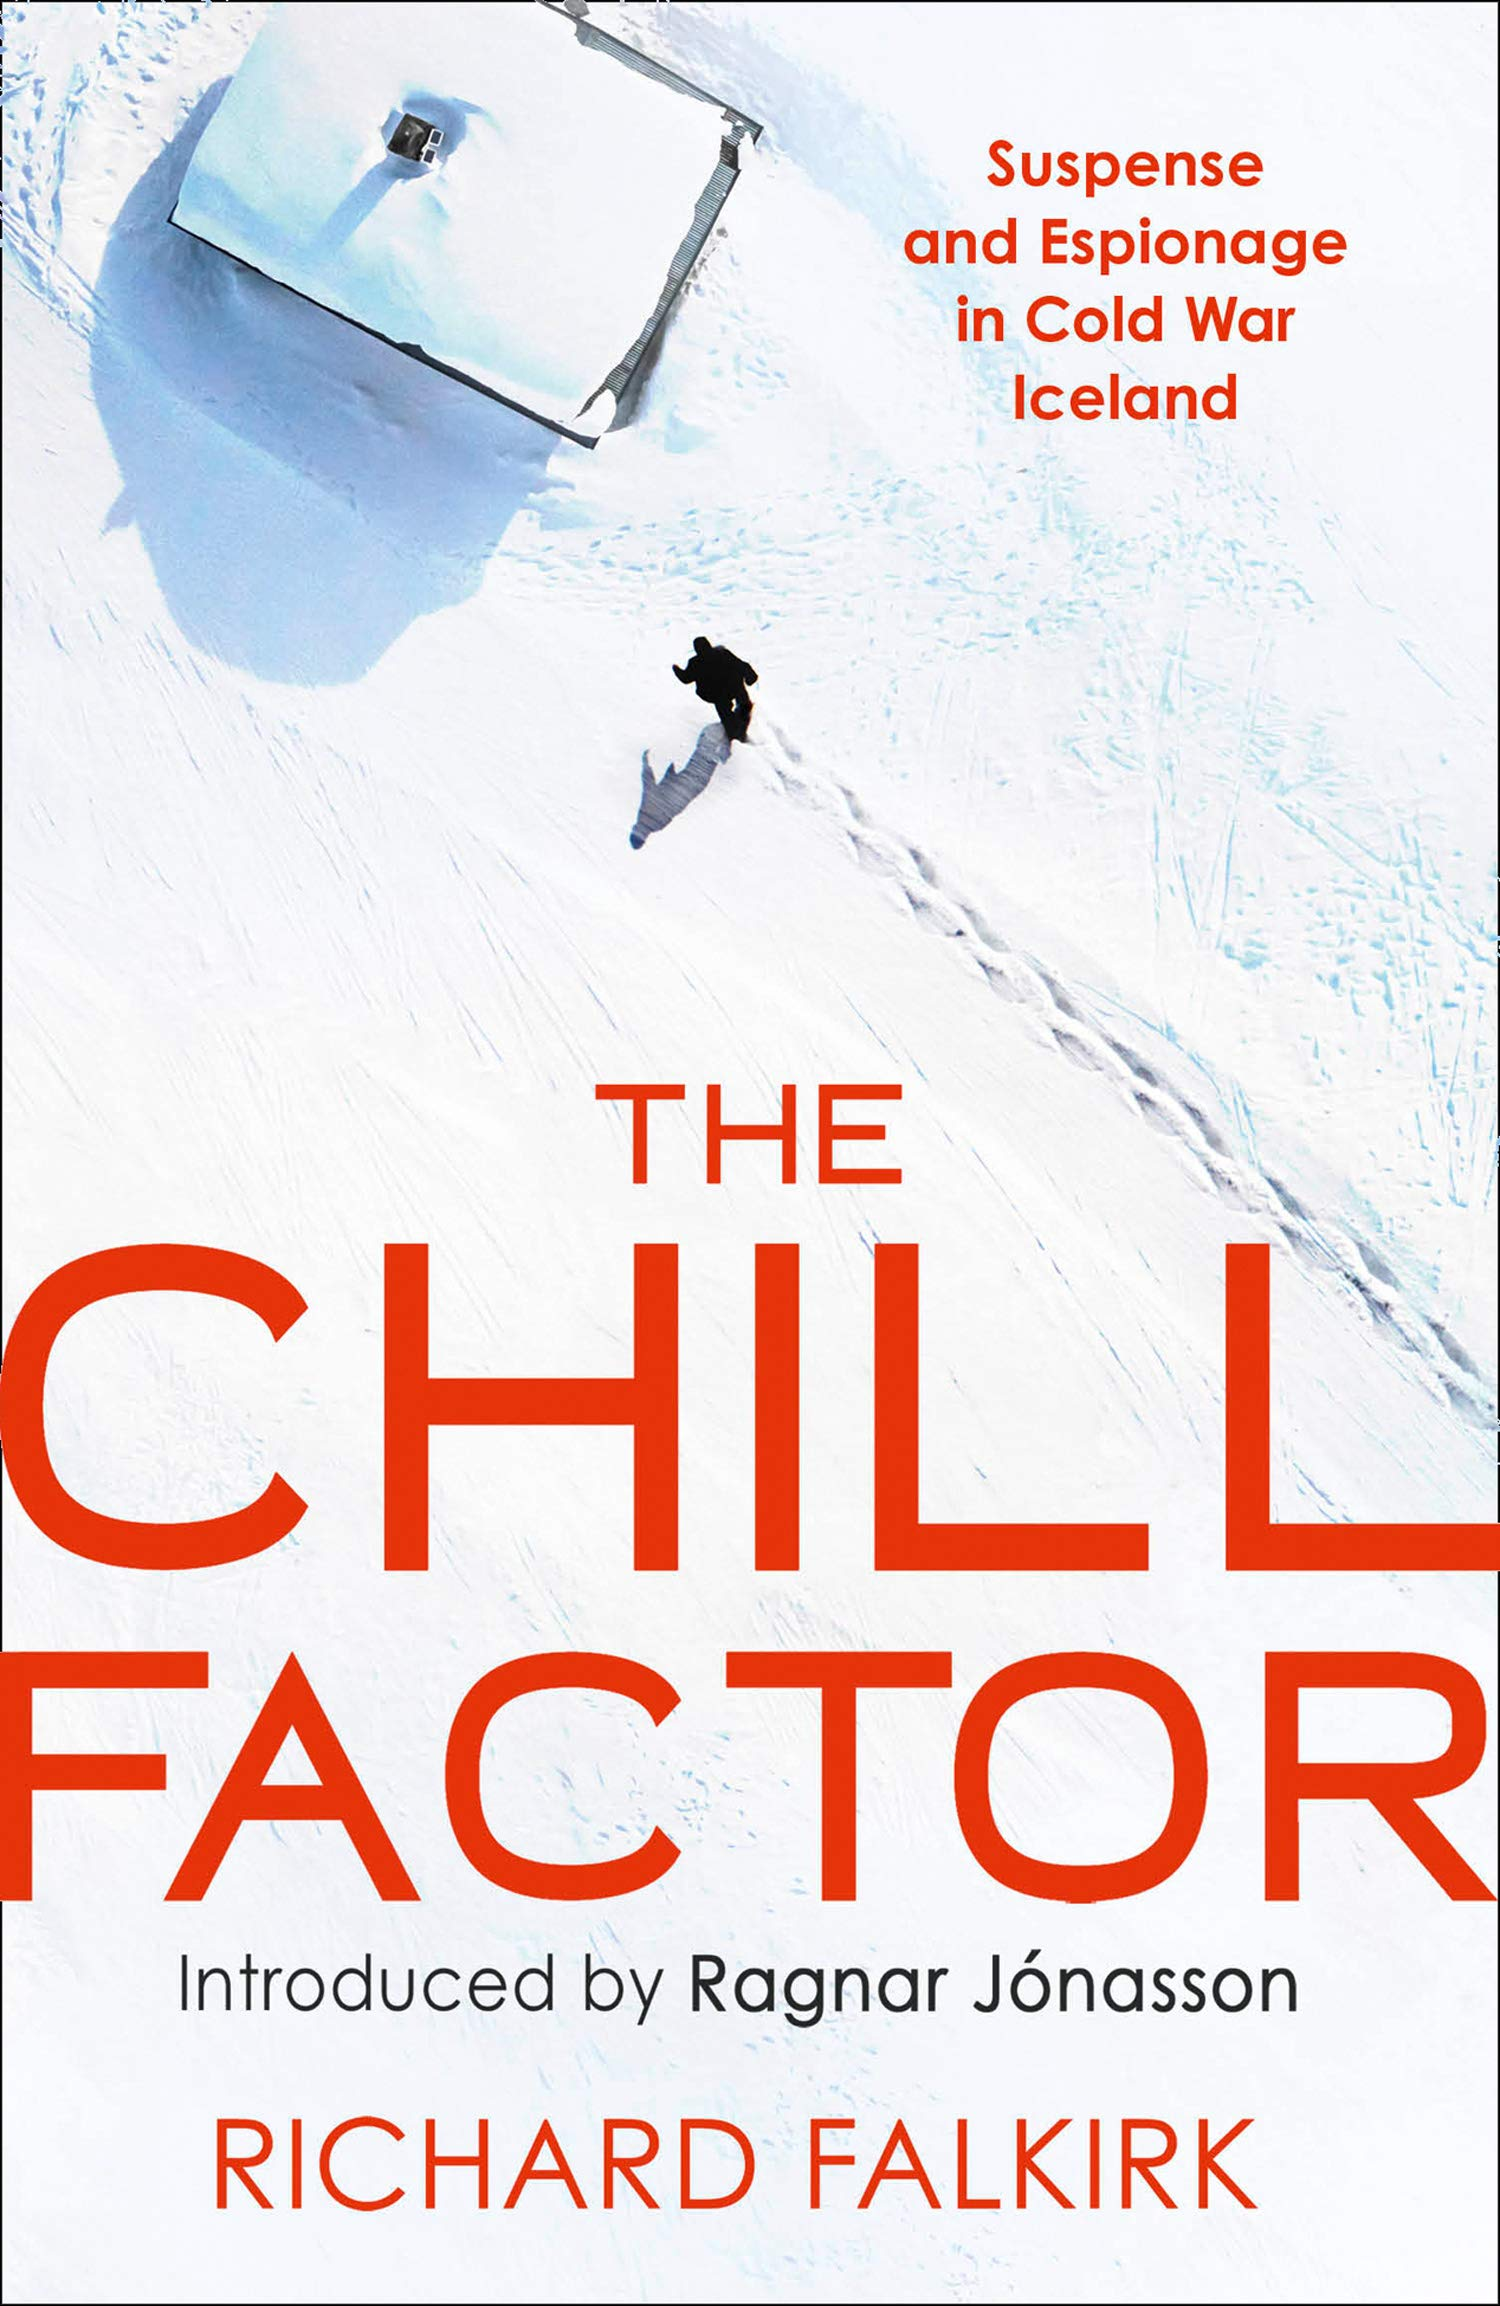 The Chill Factor: Suspense and Espionage in Cold War Iceland